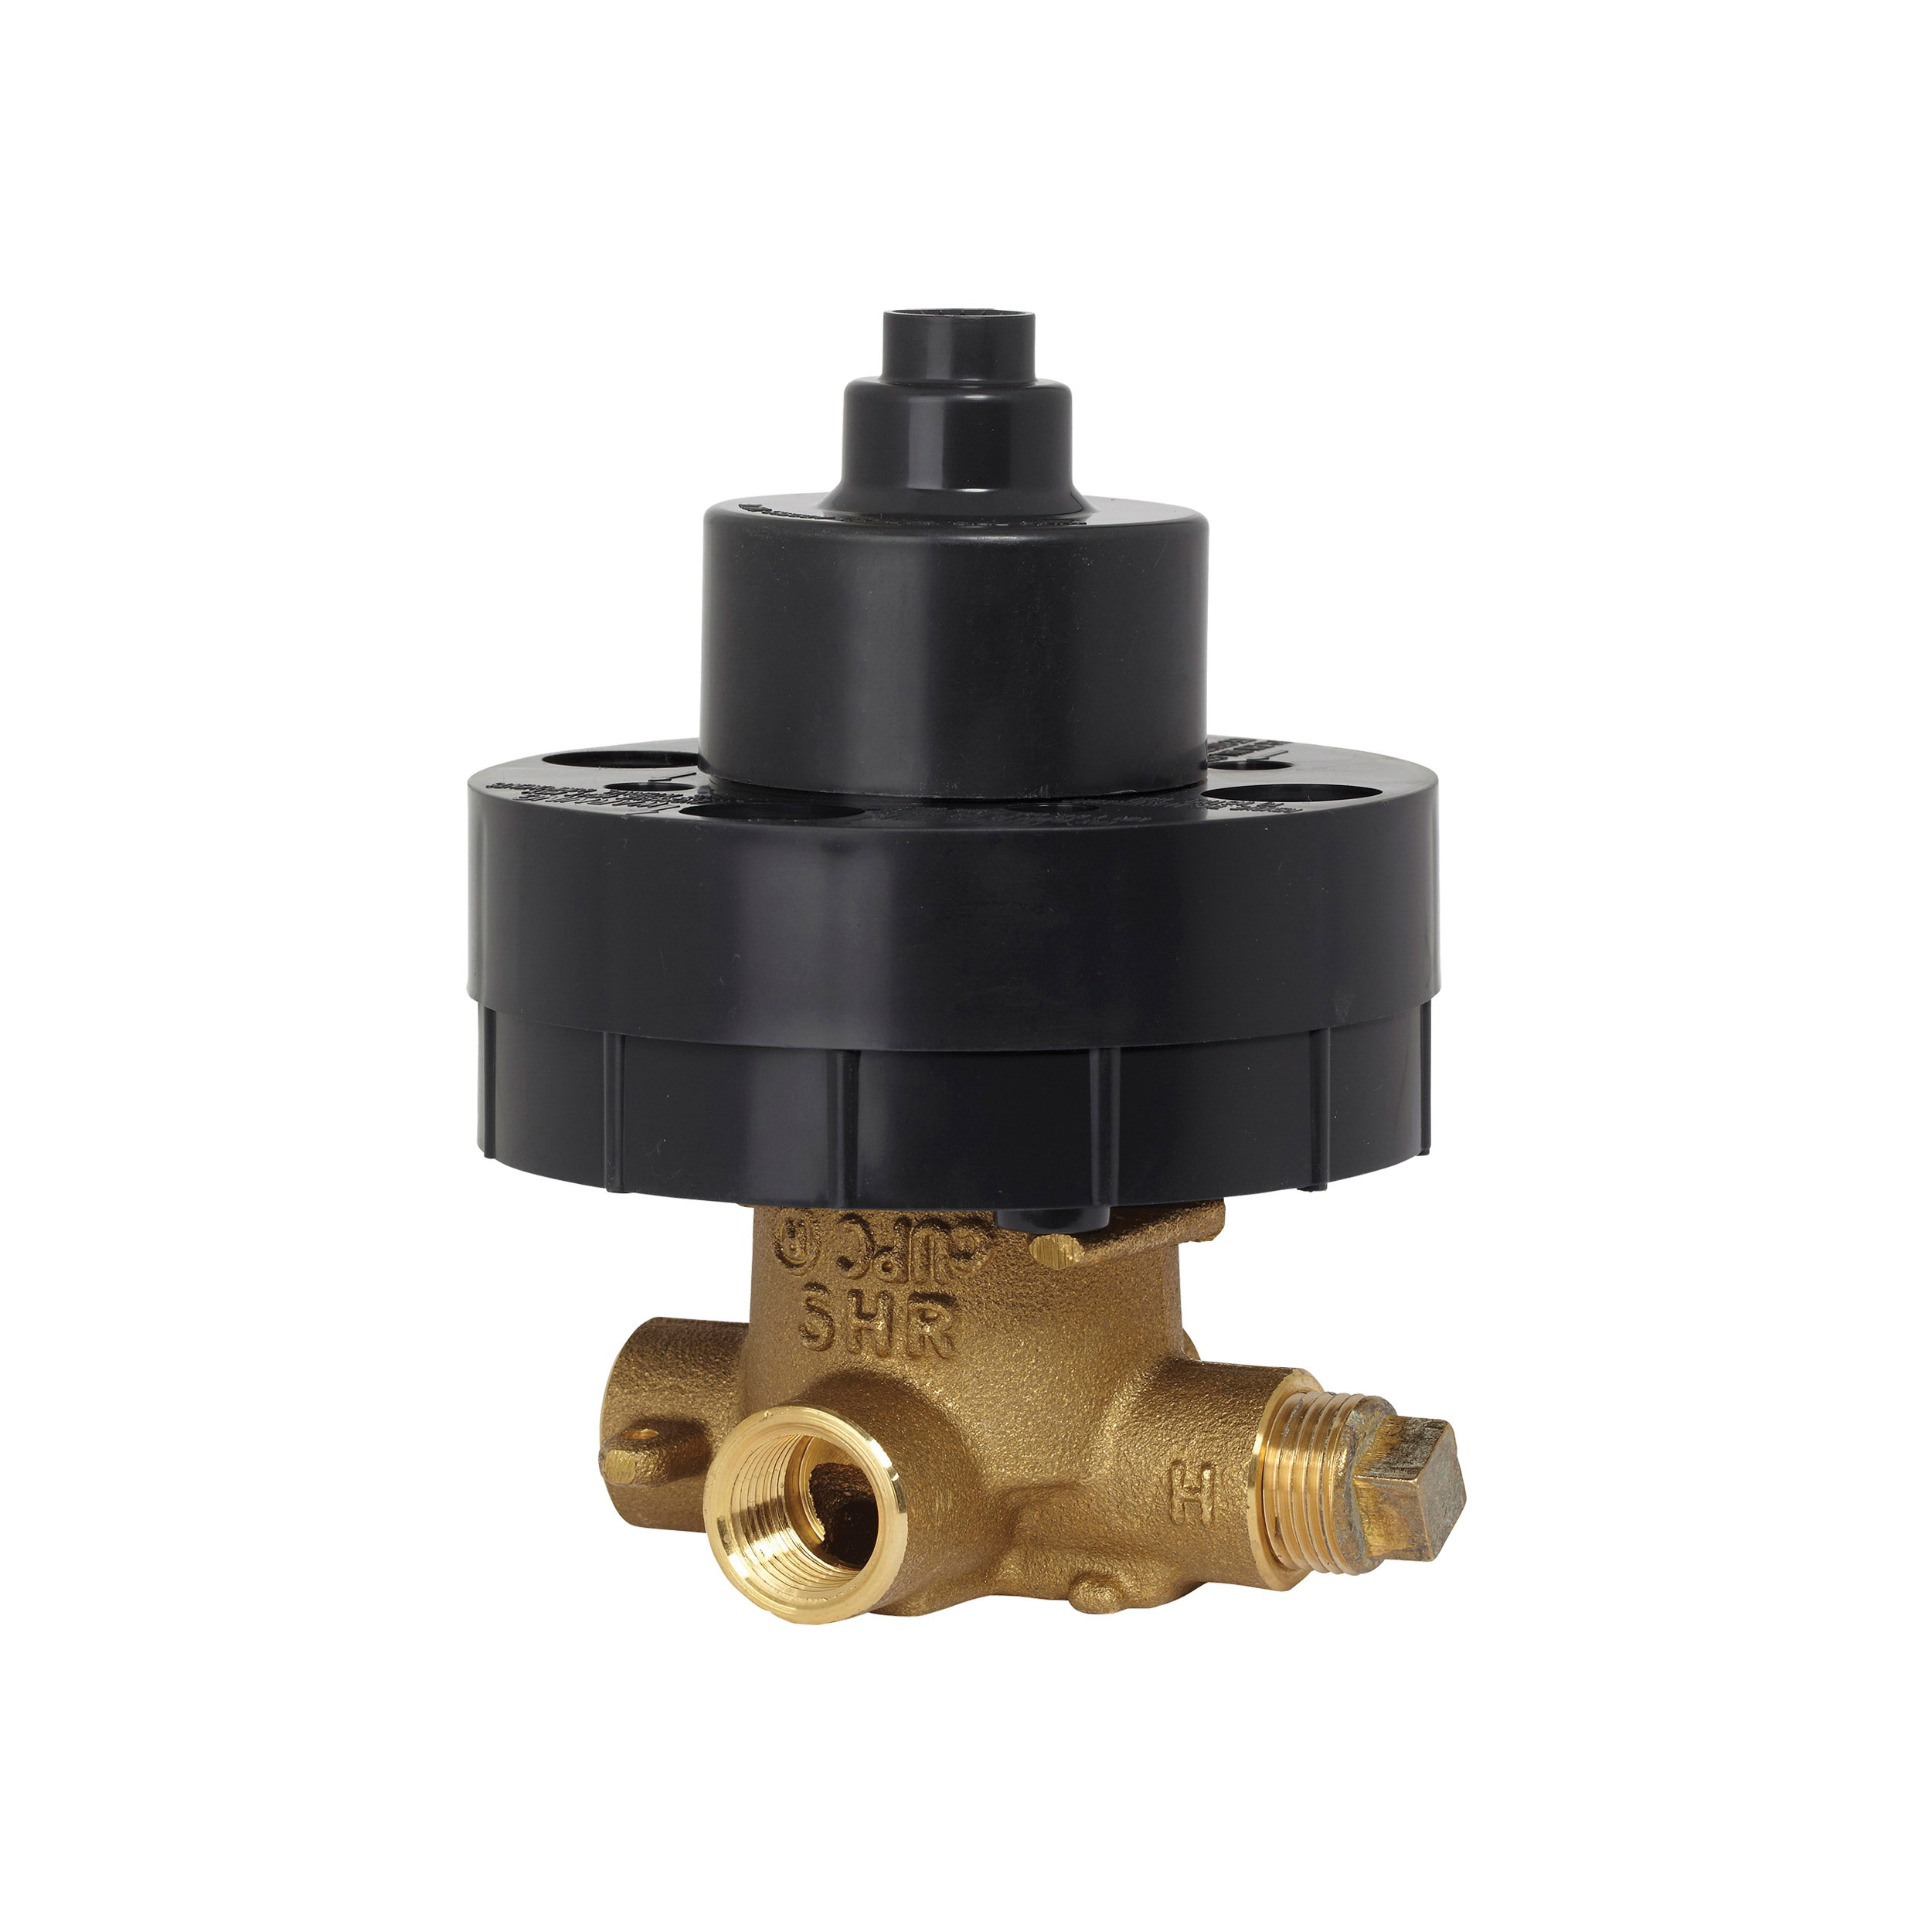 American Standard R125 Rough Valve Body, For Use With Princeton Pressure Balance Bath/Shower